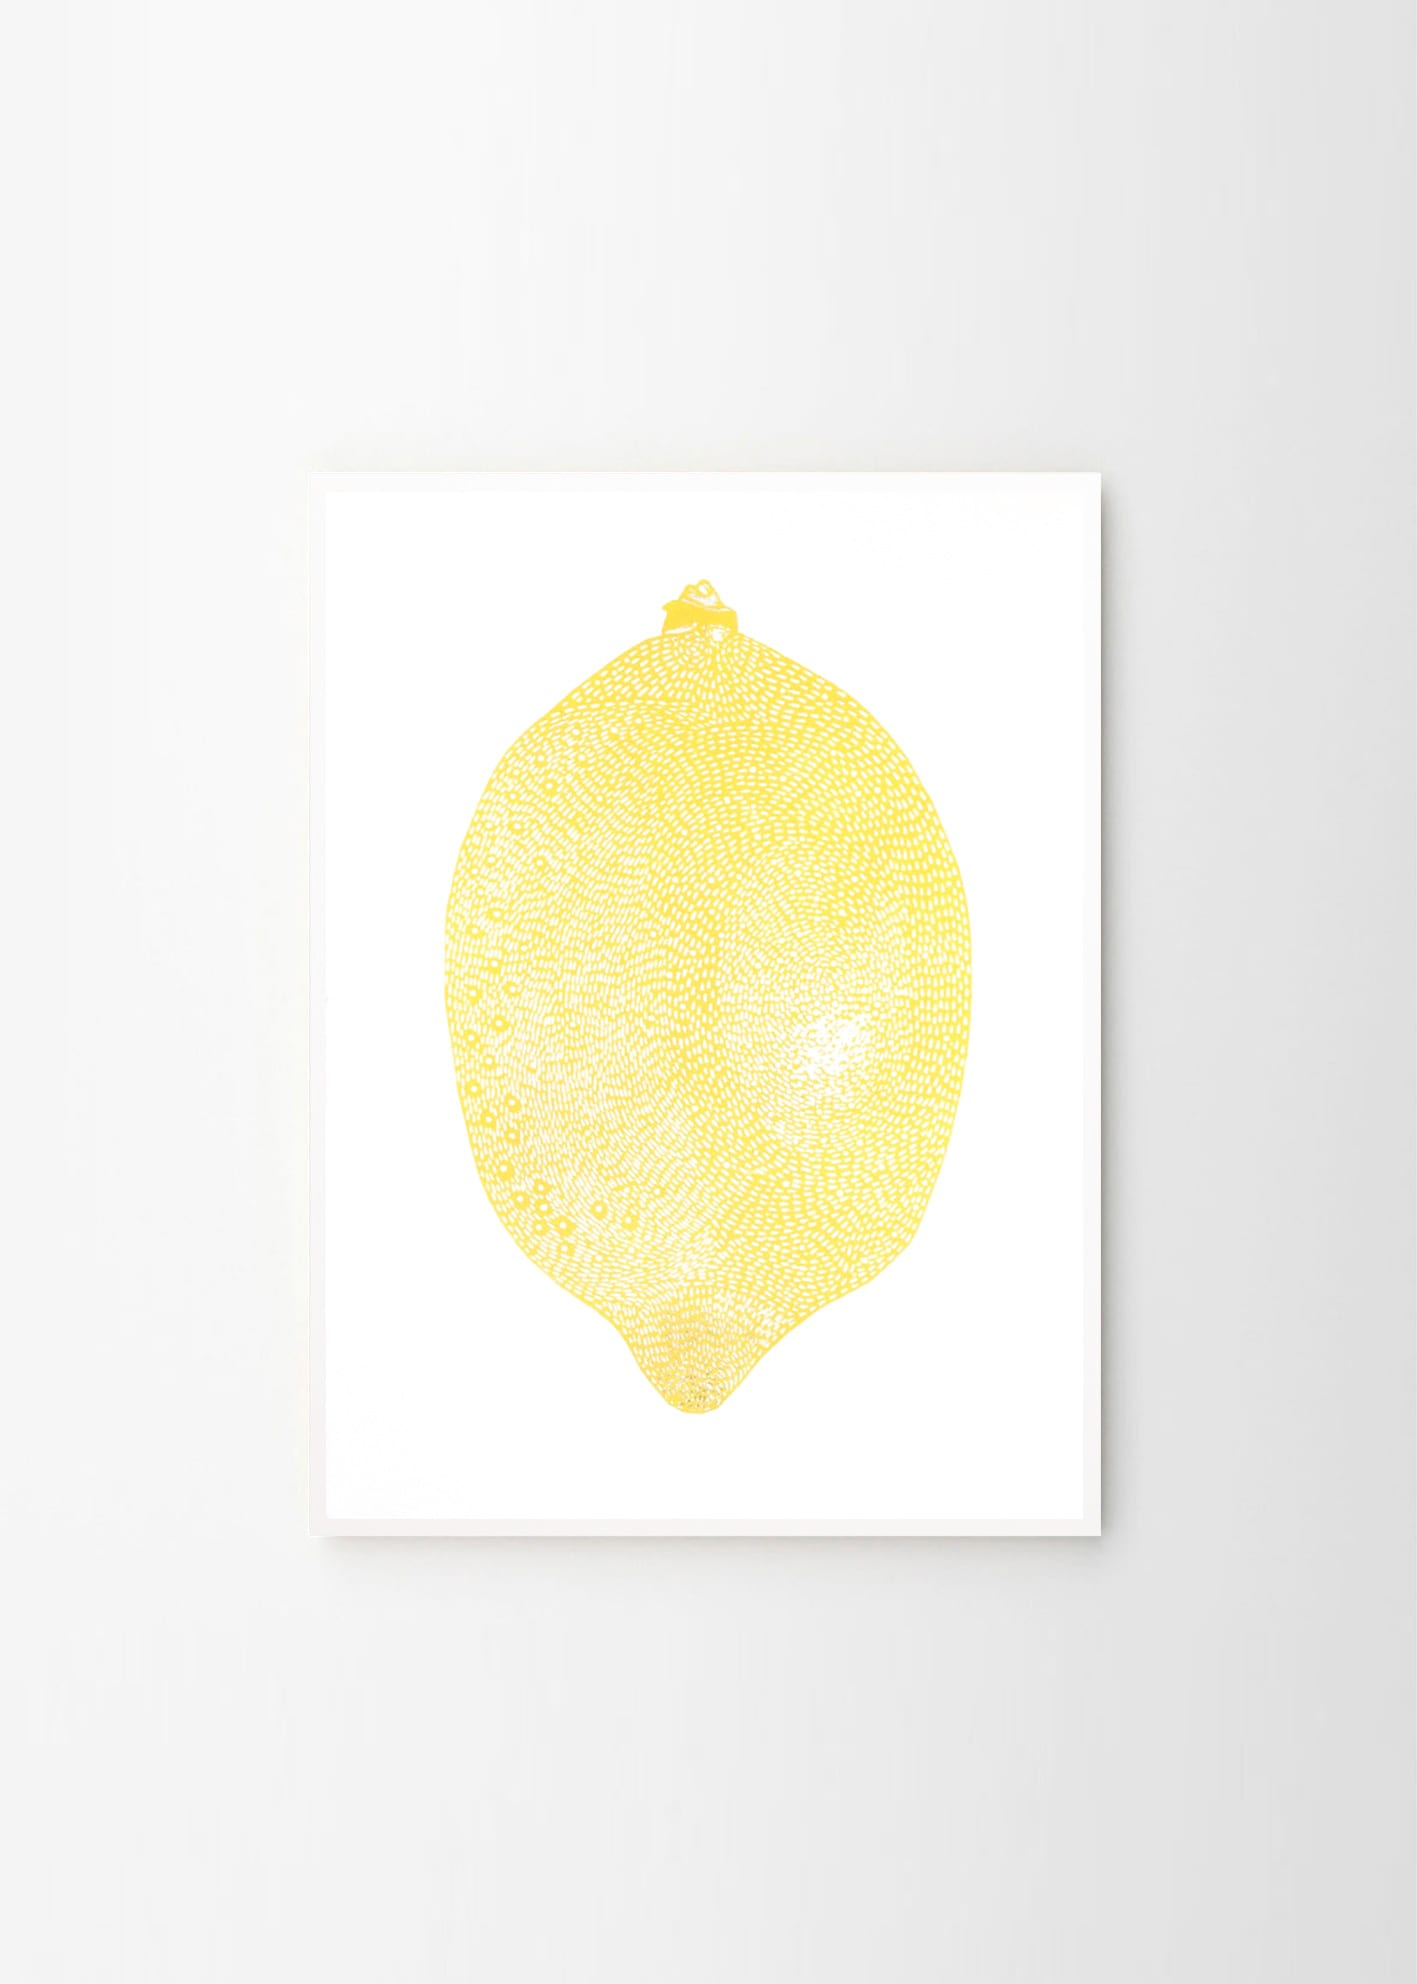 Monika Petersen - Yellow lemon